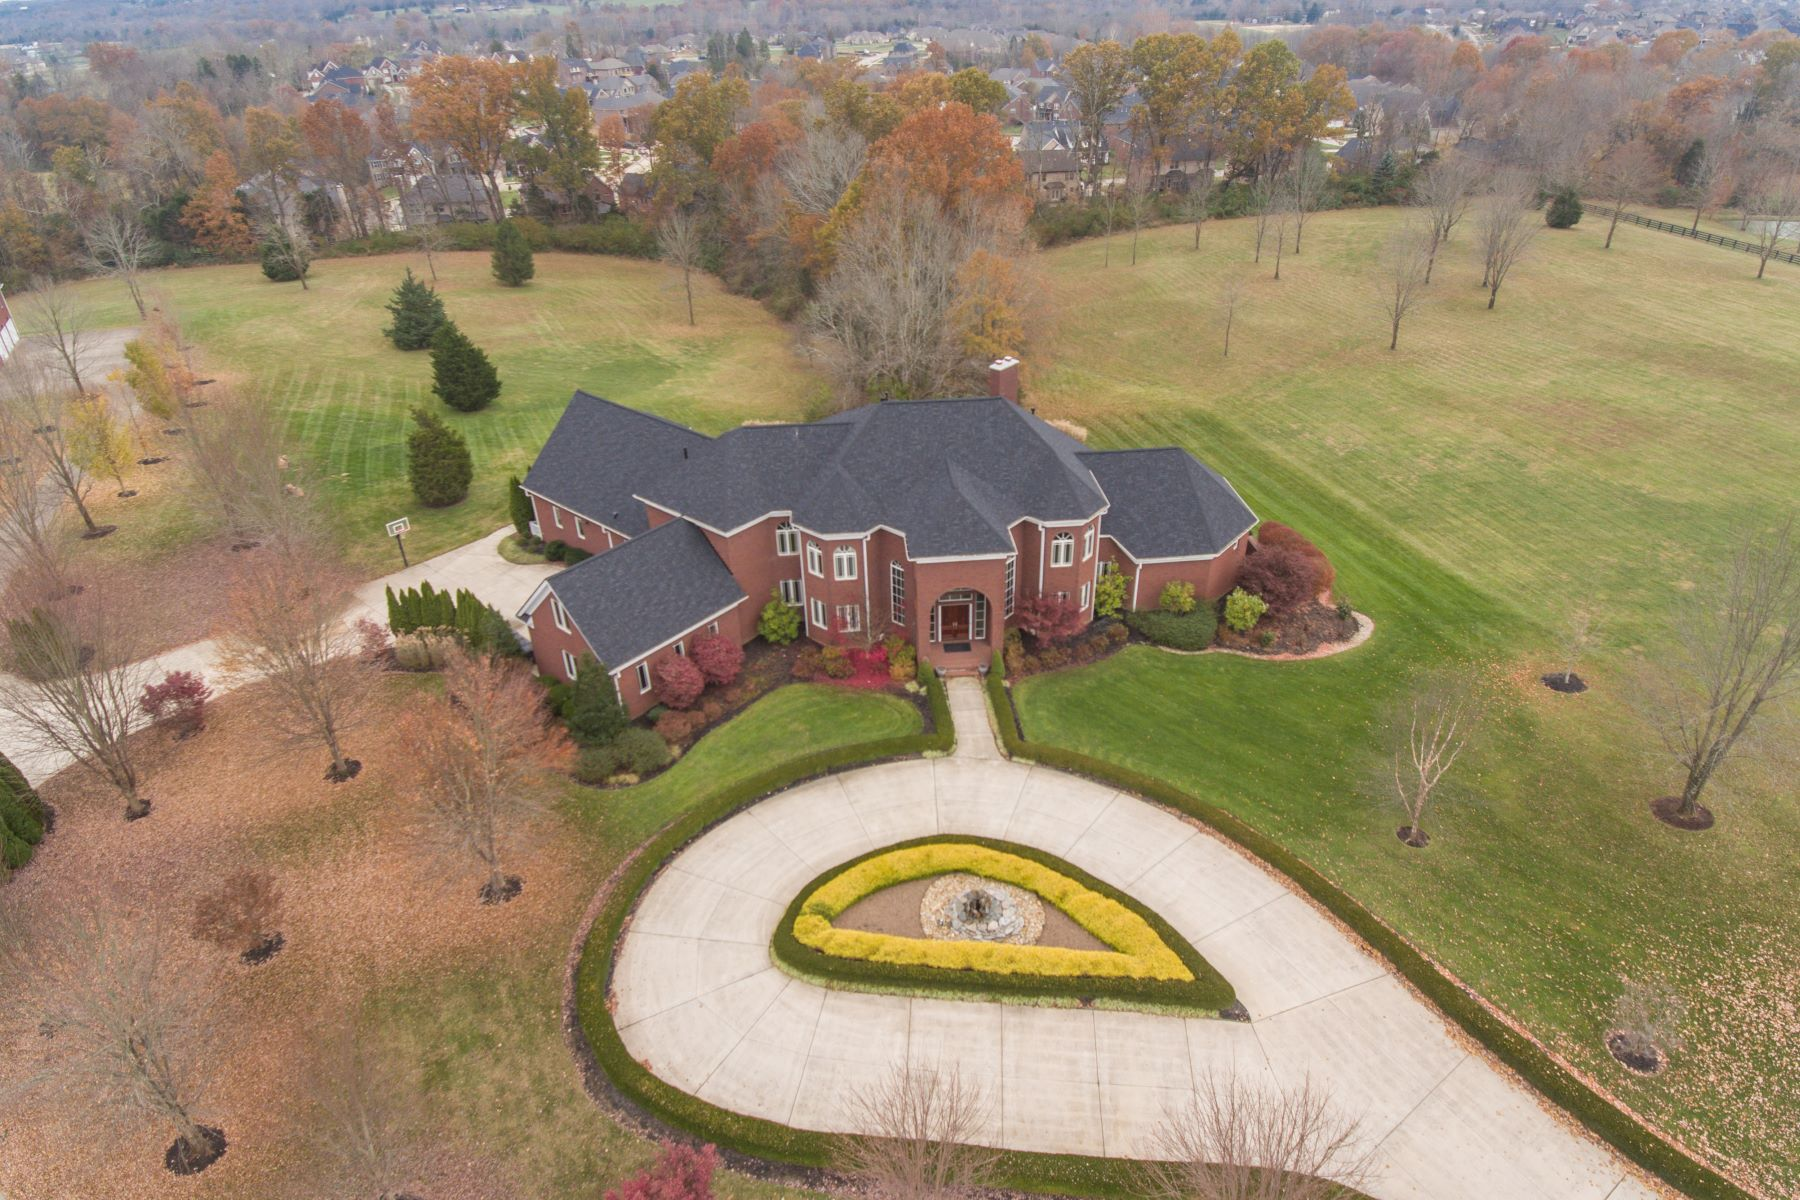 Single Family Home for Sale at 1010 Bridge Hill Court 1010 Bridge Hill Court Louisville, Kentucky 40245 United States